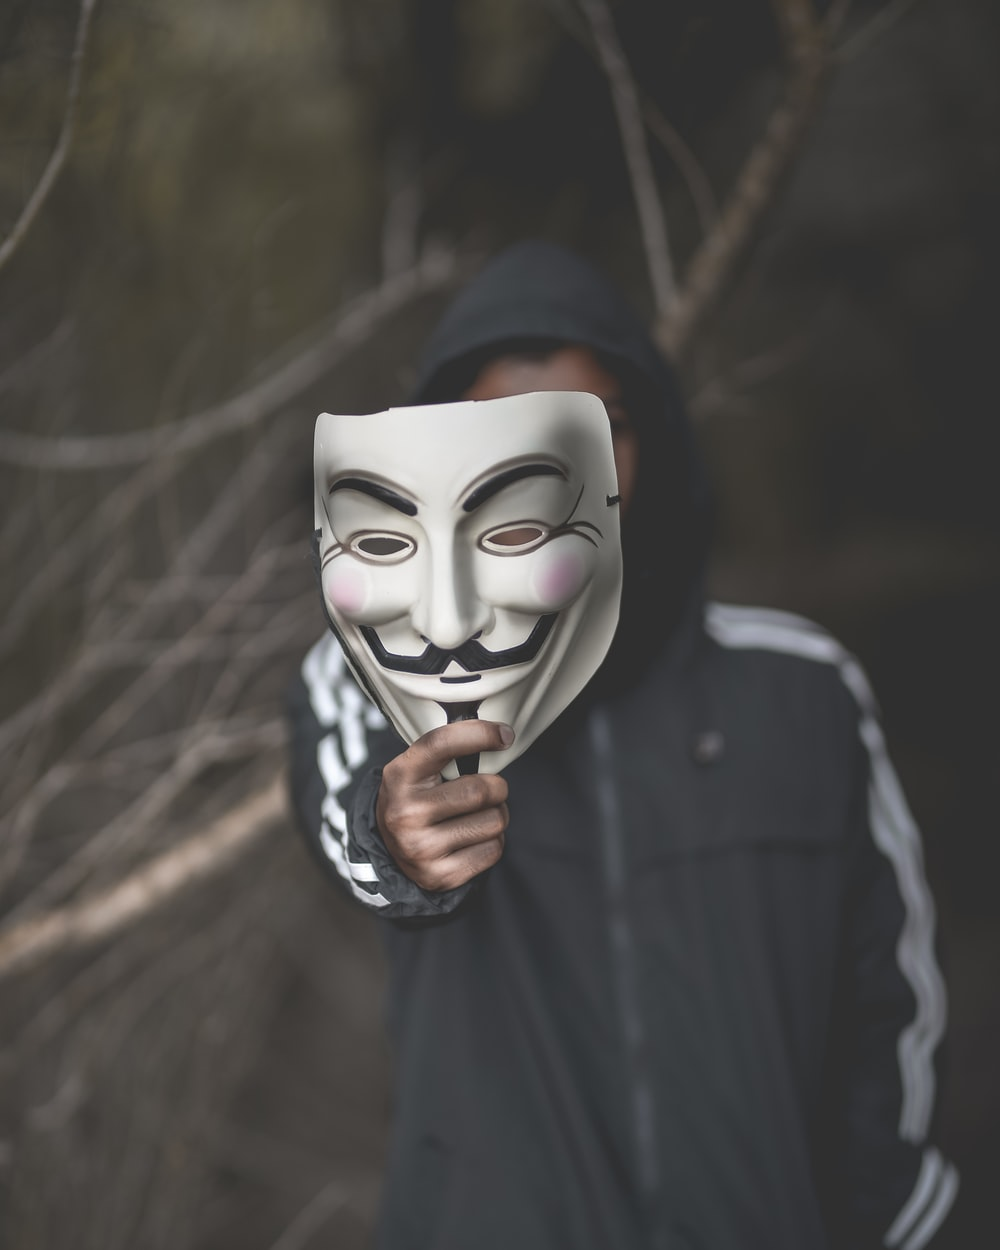 Vendetta Mask Pictures Download Free Images On Unsplash